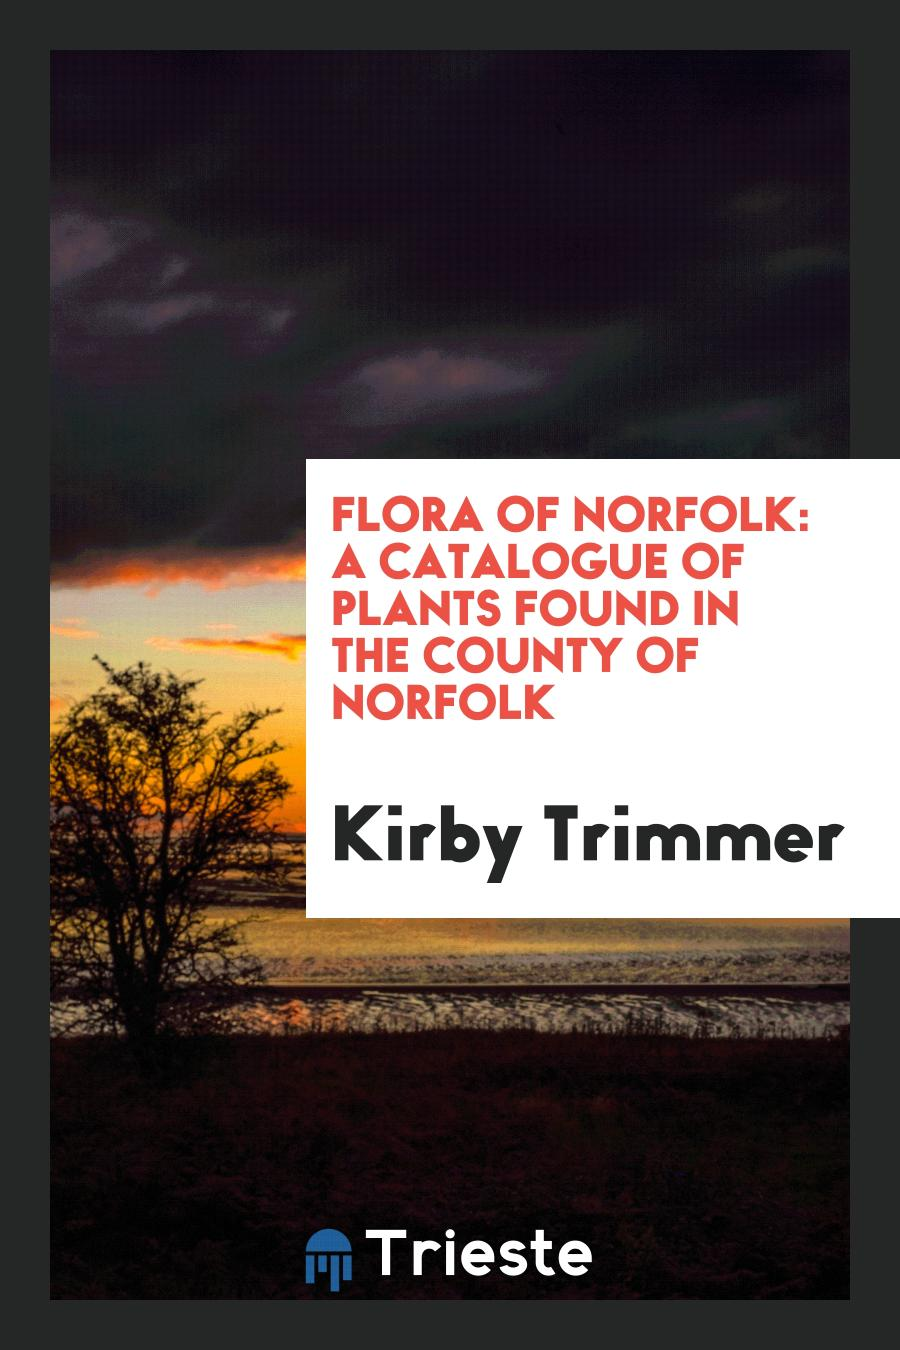 Flora of Norfolk: A Catalogue of Plants Found in the County of Norfolk